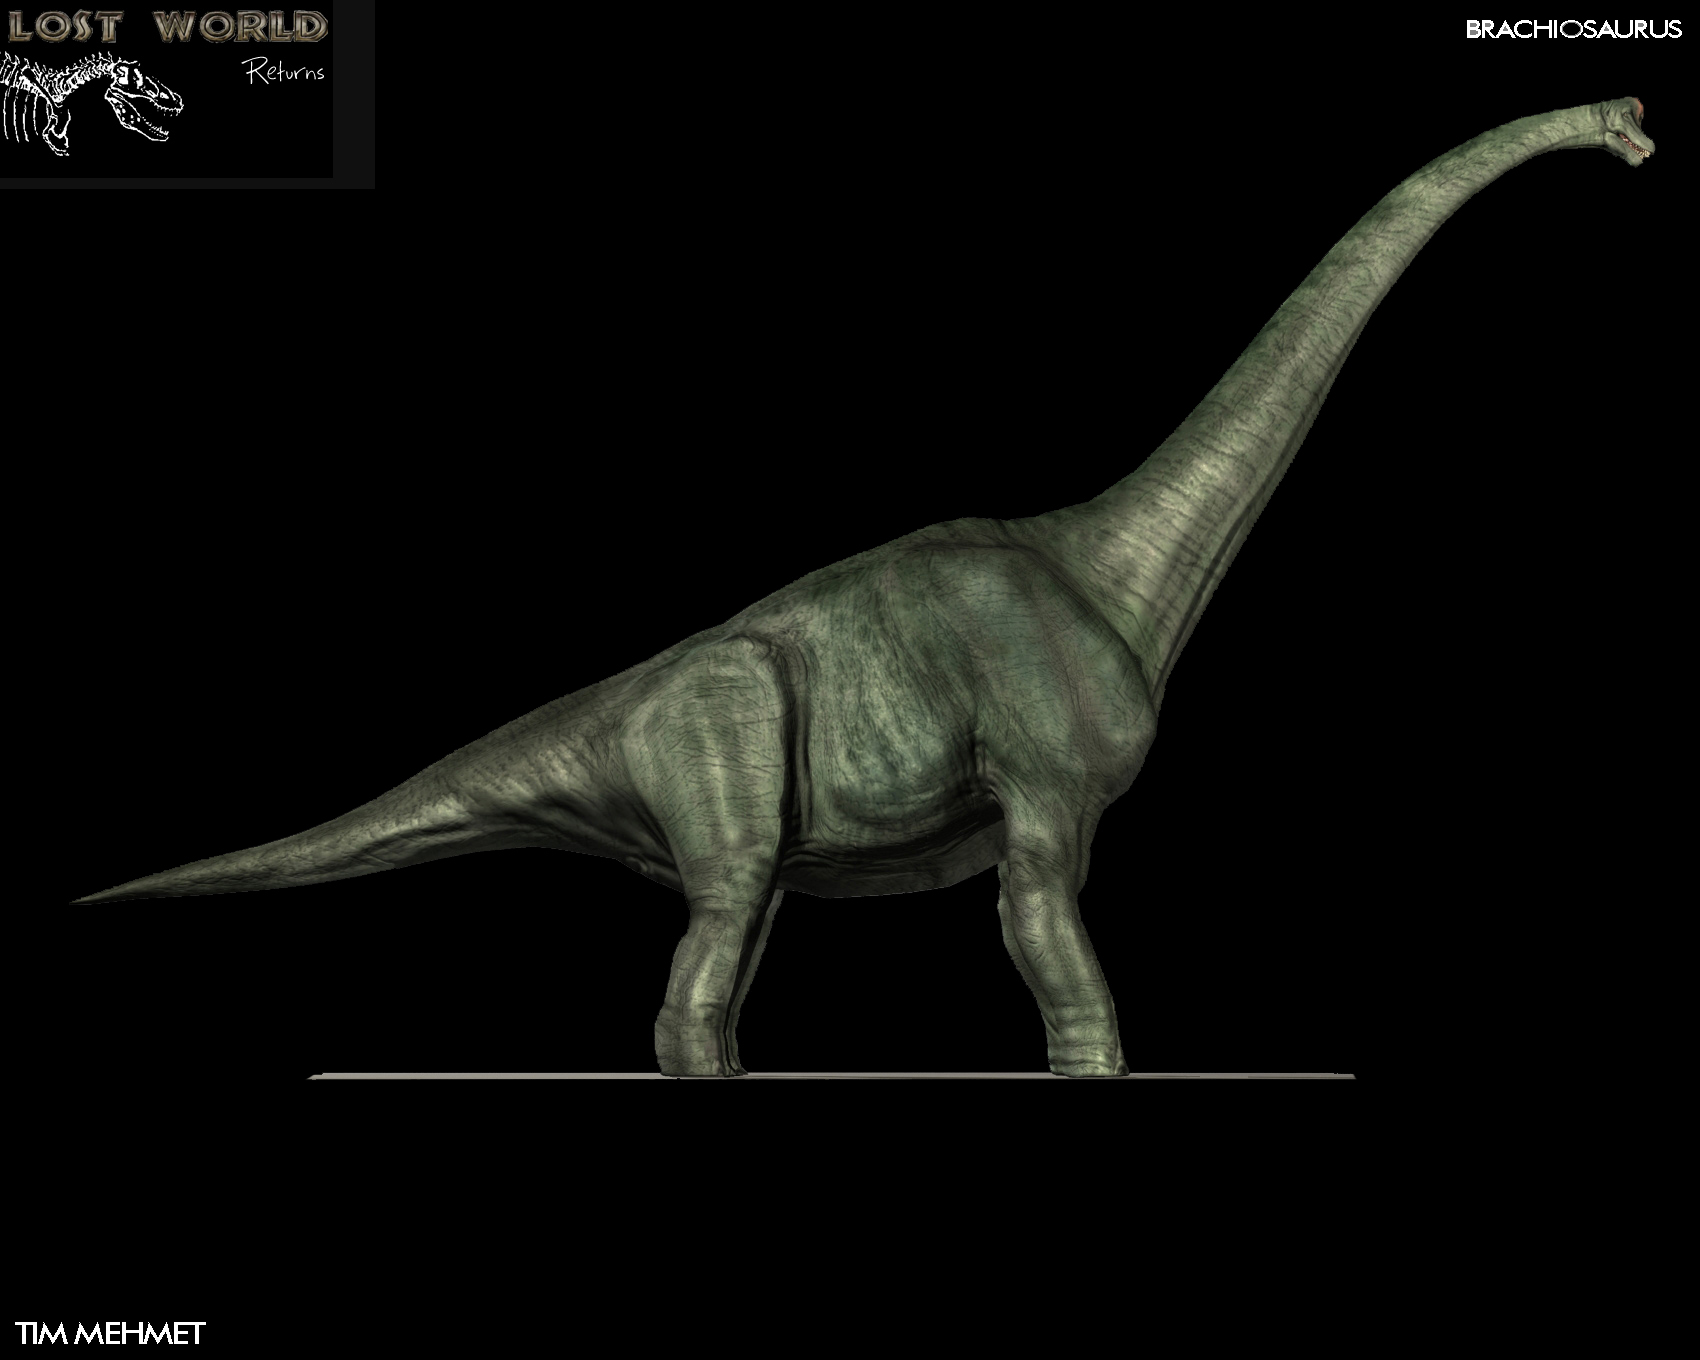 Games Released With Ps4 : Brachiosaurus spotted image lost world returns mod for